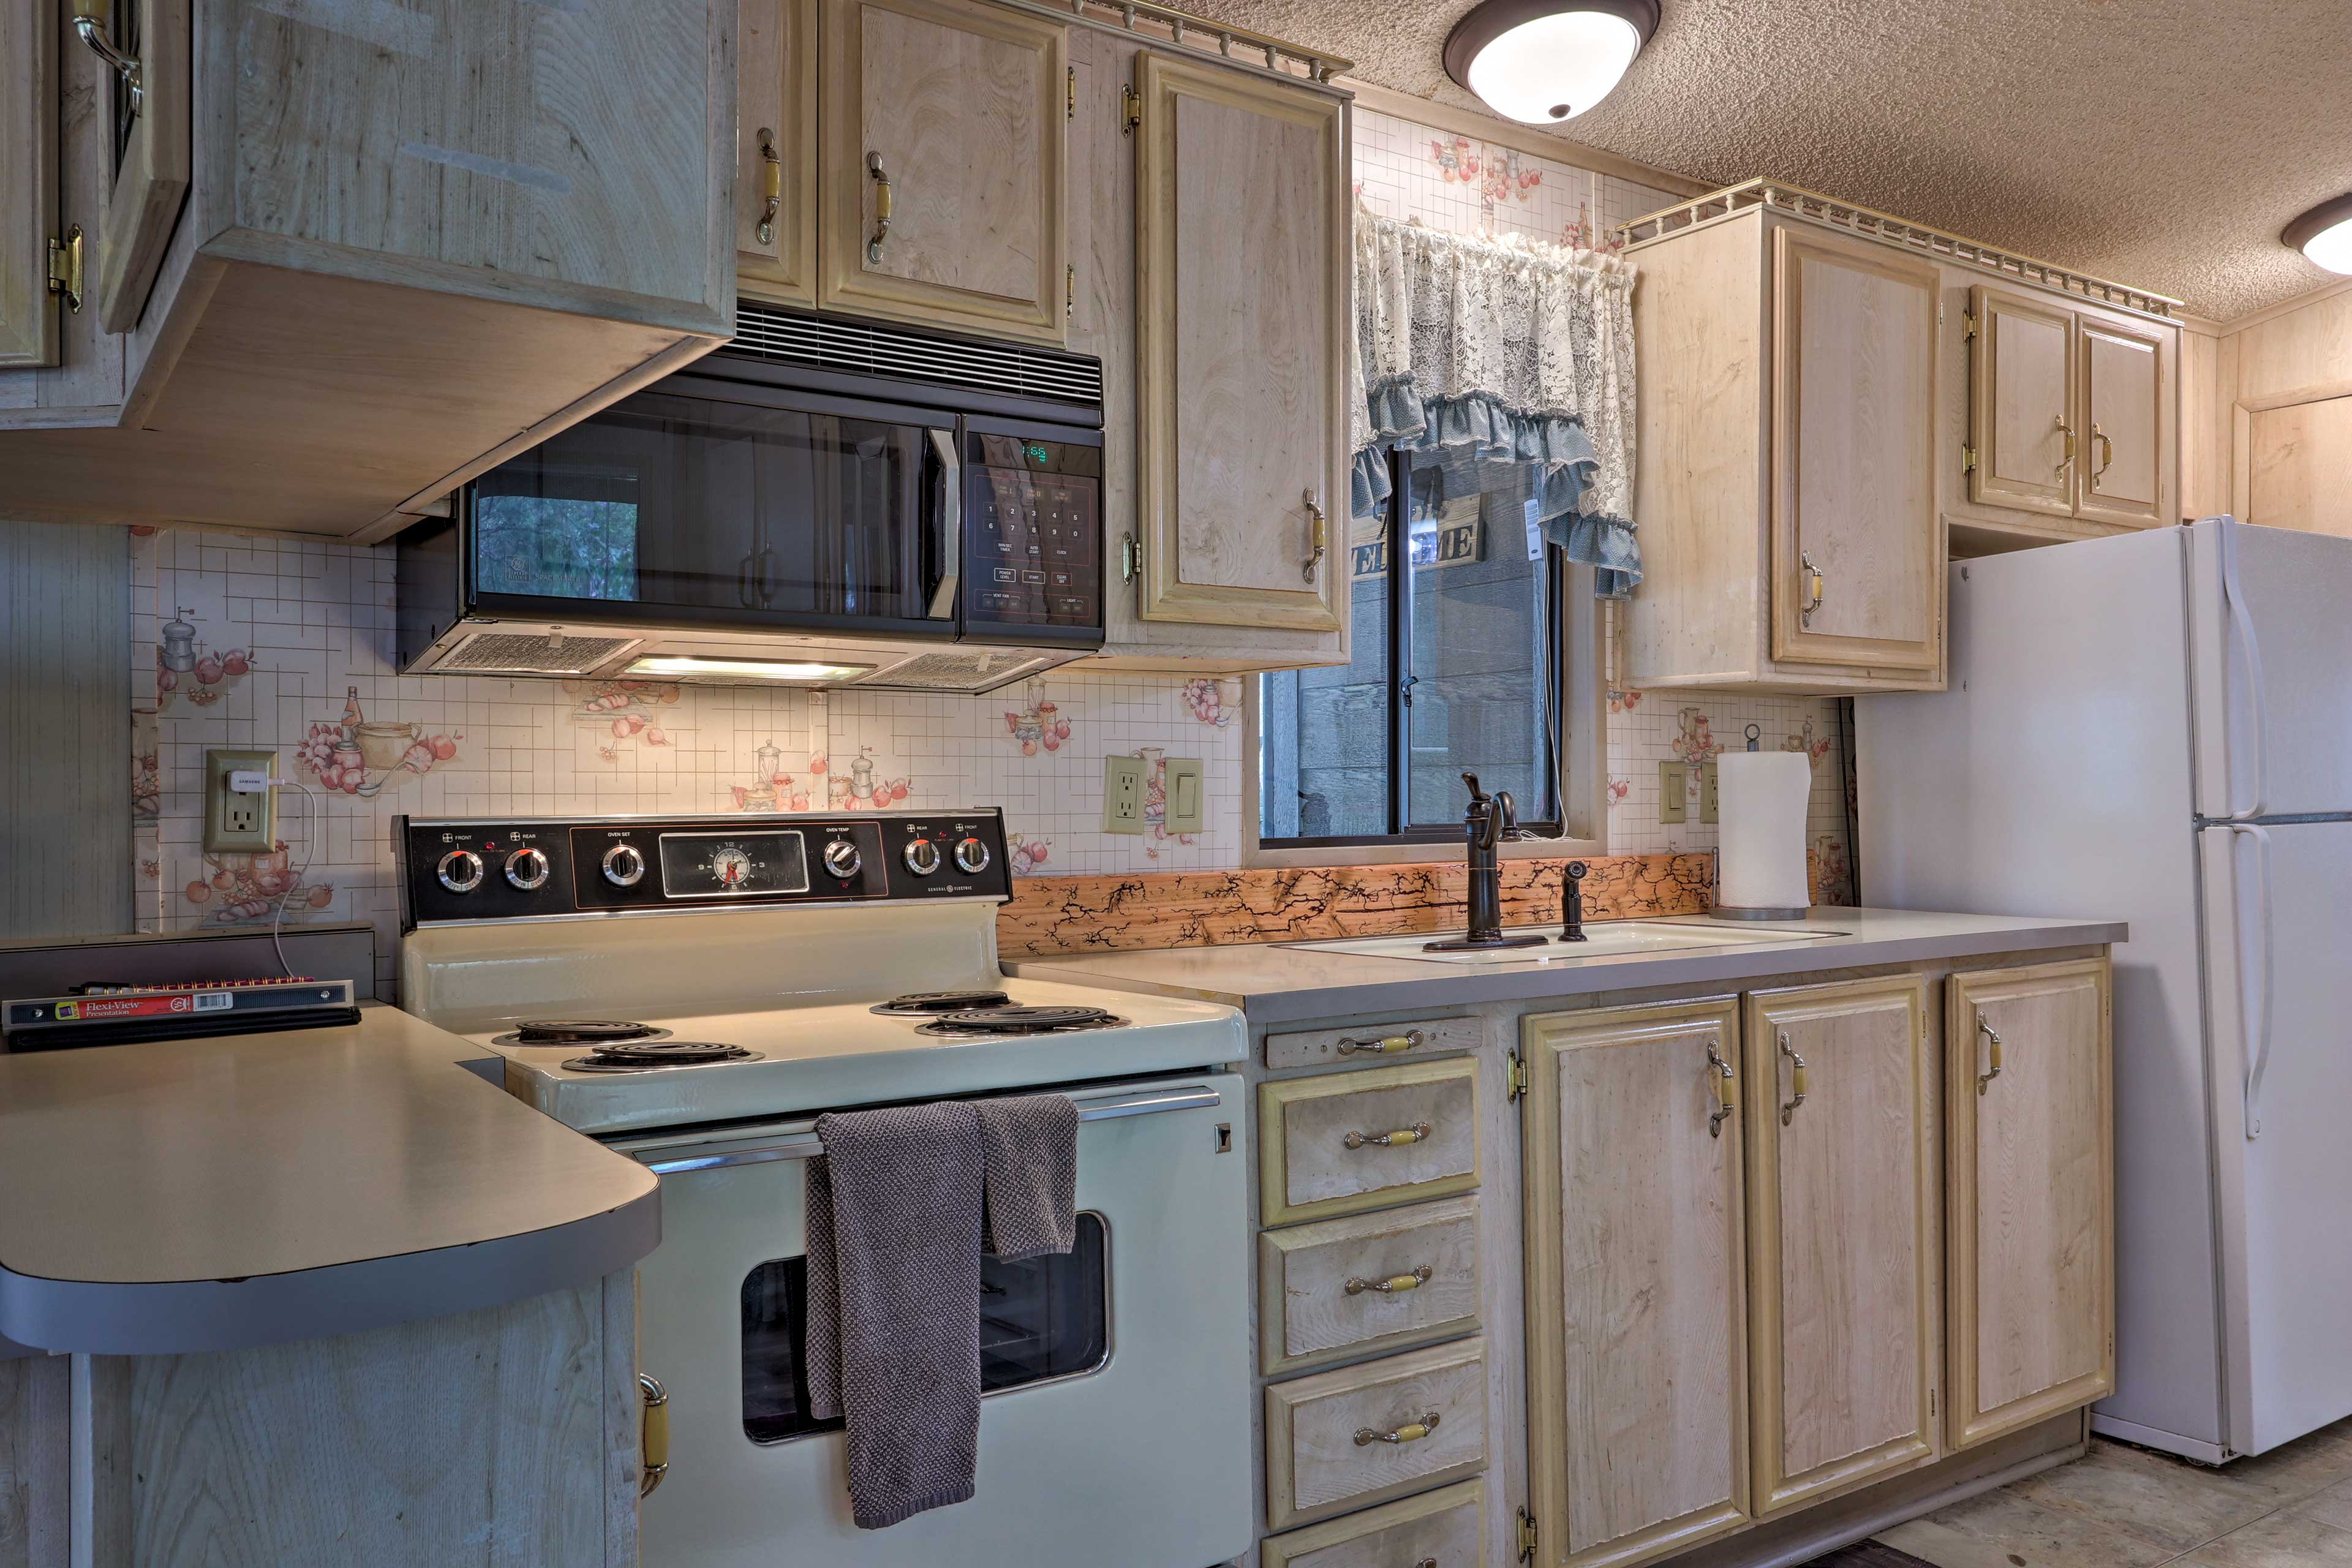 Hungry? Whip up a meal in the fully equipped kitchen.